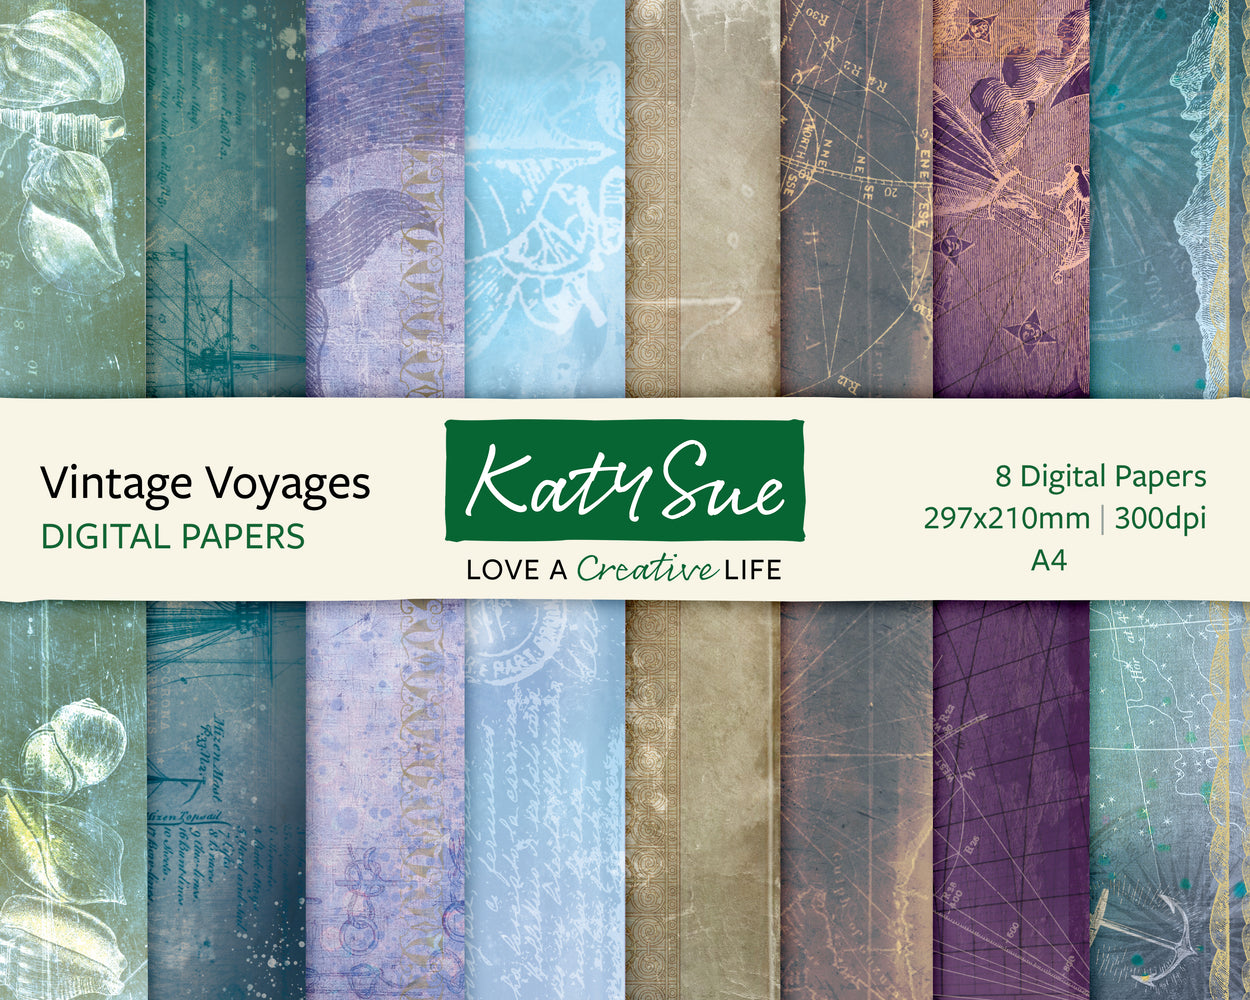 Vintage Voyages | A4 Digital Papers